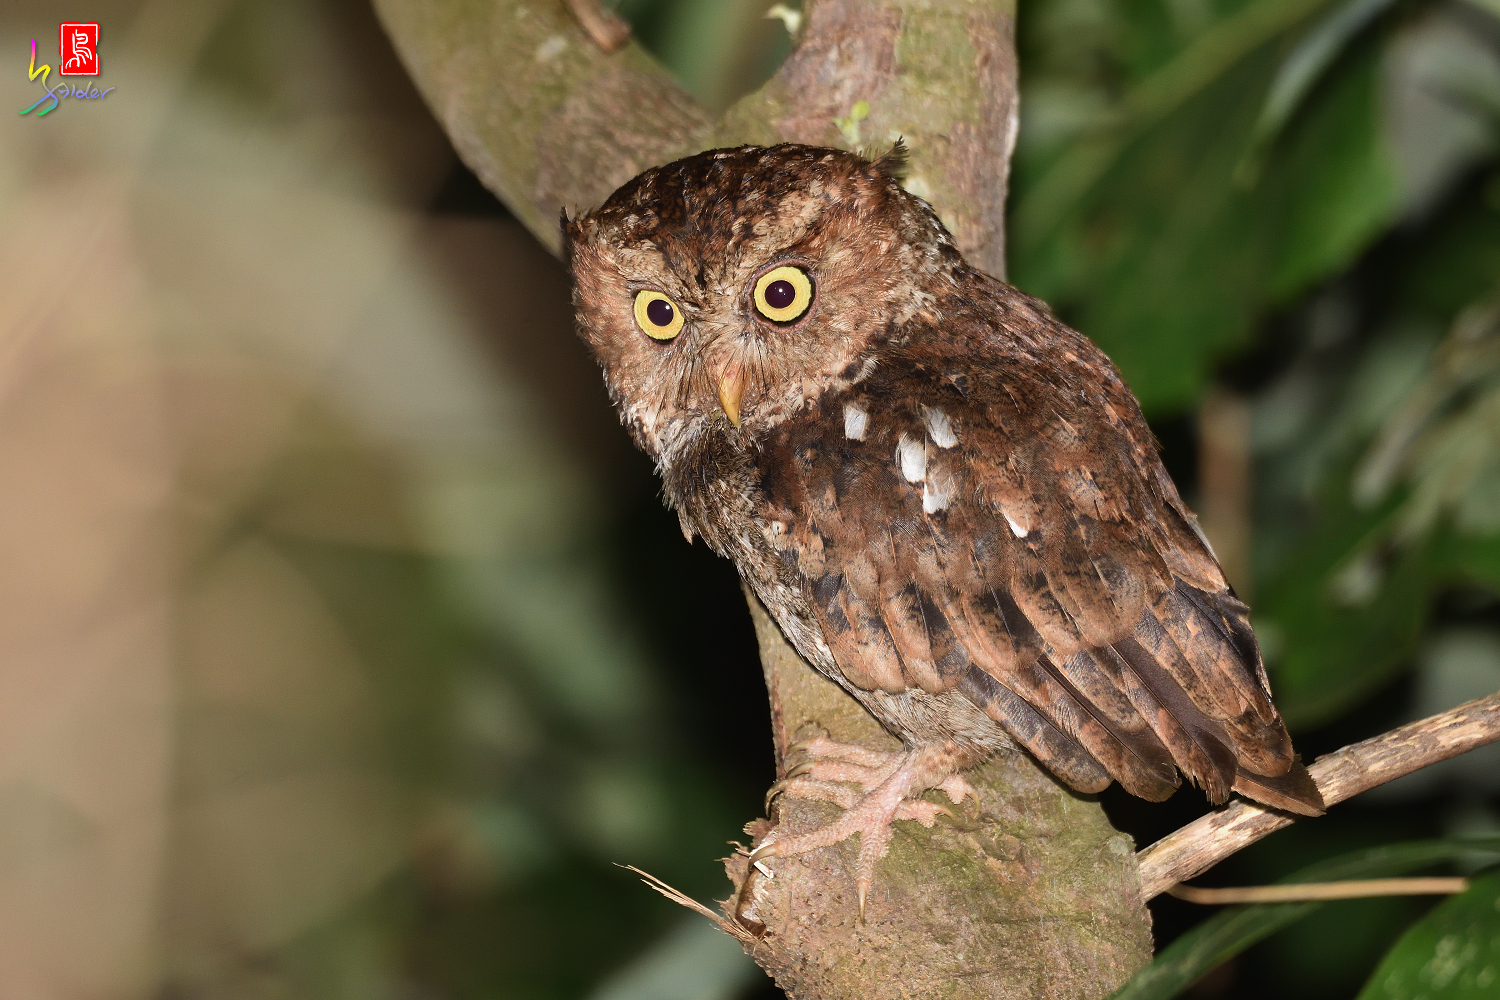 Moutain_Scops_Owl_3166